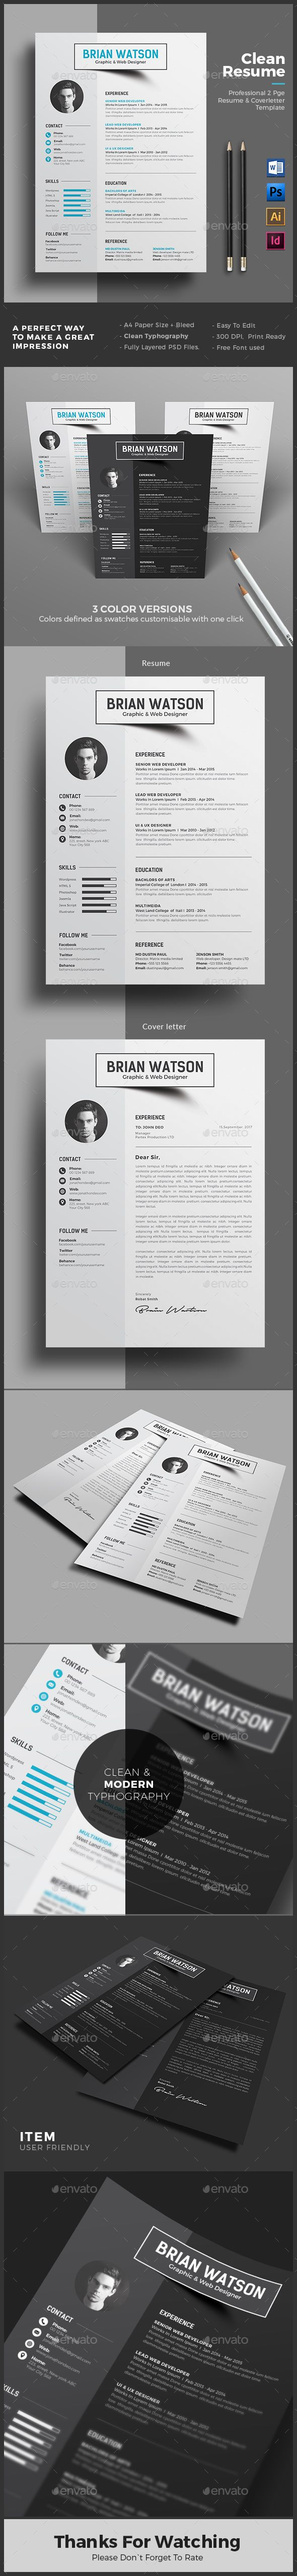 Nice 1 Page Resume Format Free Download Thick 1 Year Experience Resume Format For Java Developer Shaped 1 Year Experience Resume Format For Net Developer 15 Year Old Funny Resume Young 1st Year Teacher Resume Template Yellow2 Page Resume Layout 25  Best Ideas About Best Resume Format On Pinterest | Best Cv ..